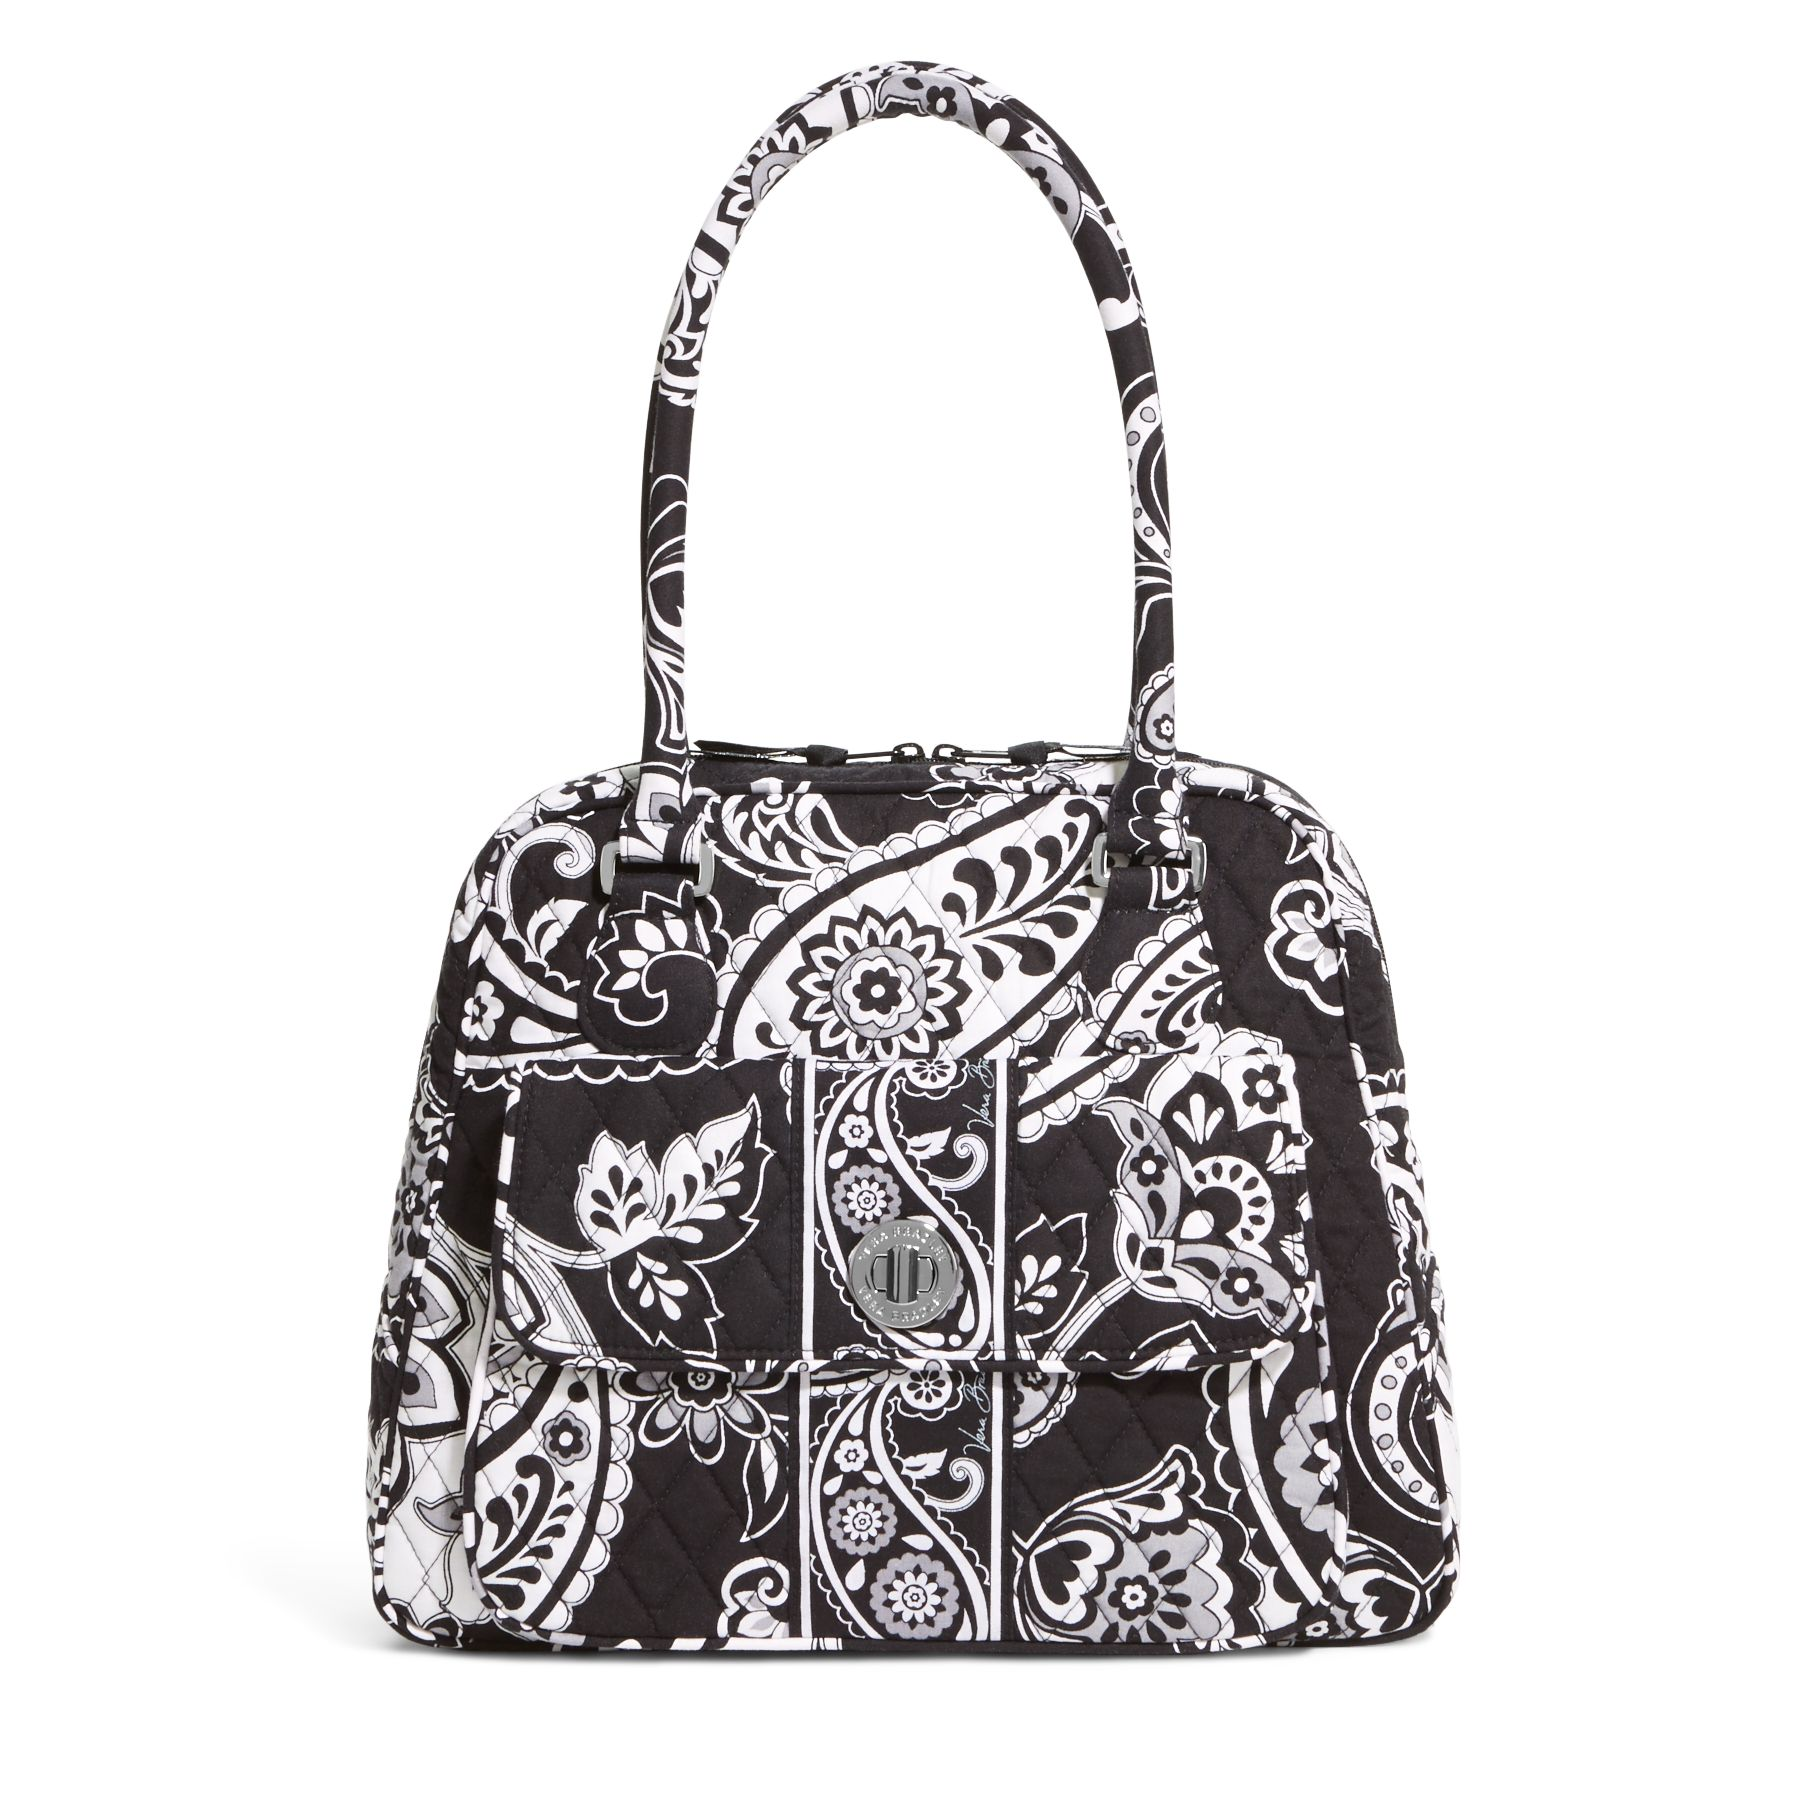 Vera Bradley Turn Lock Satchel in Midnight Paisley